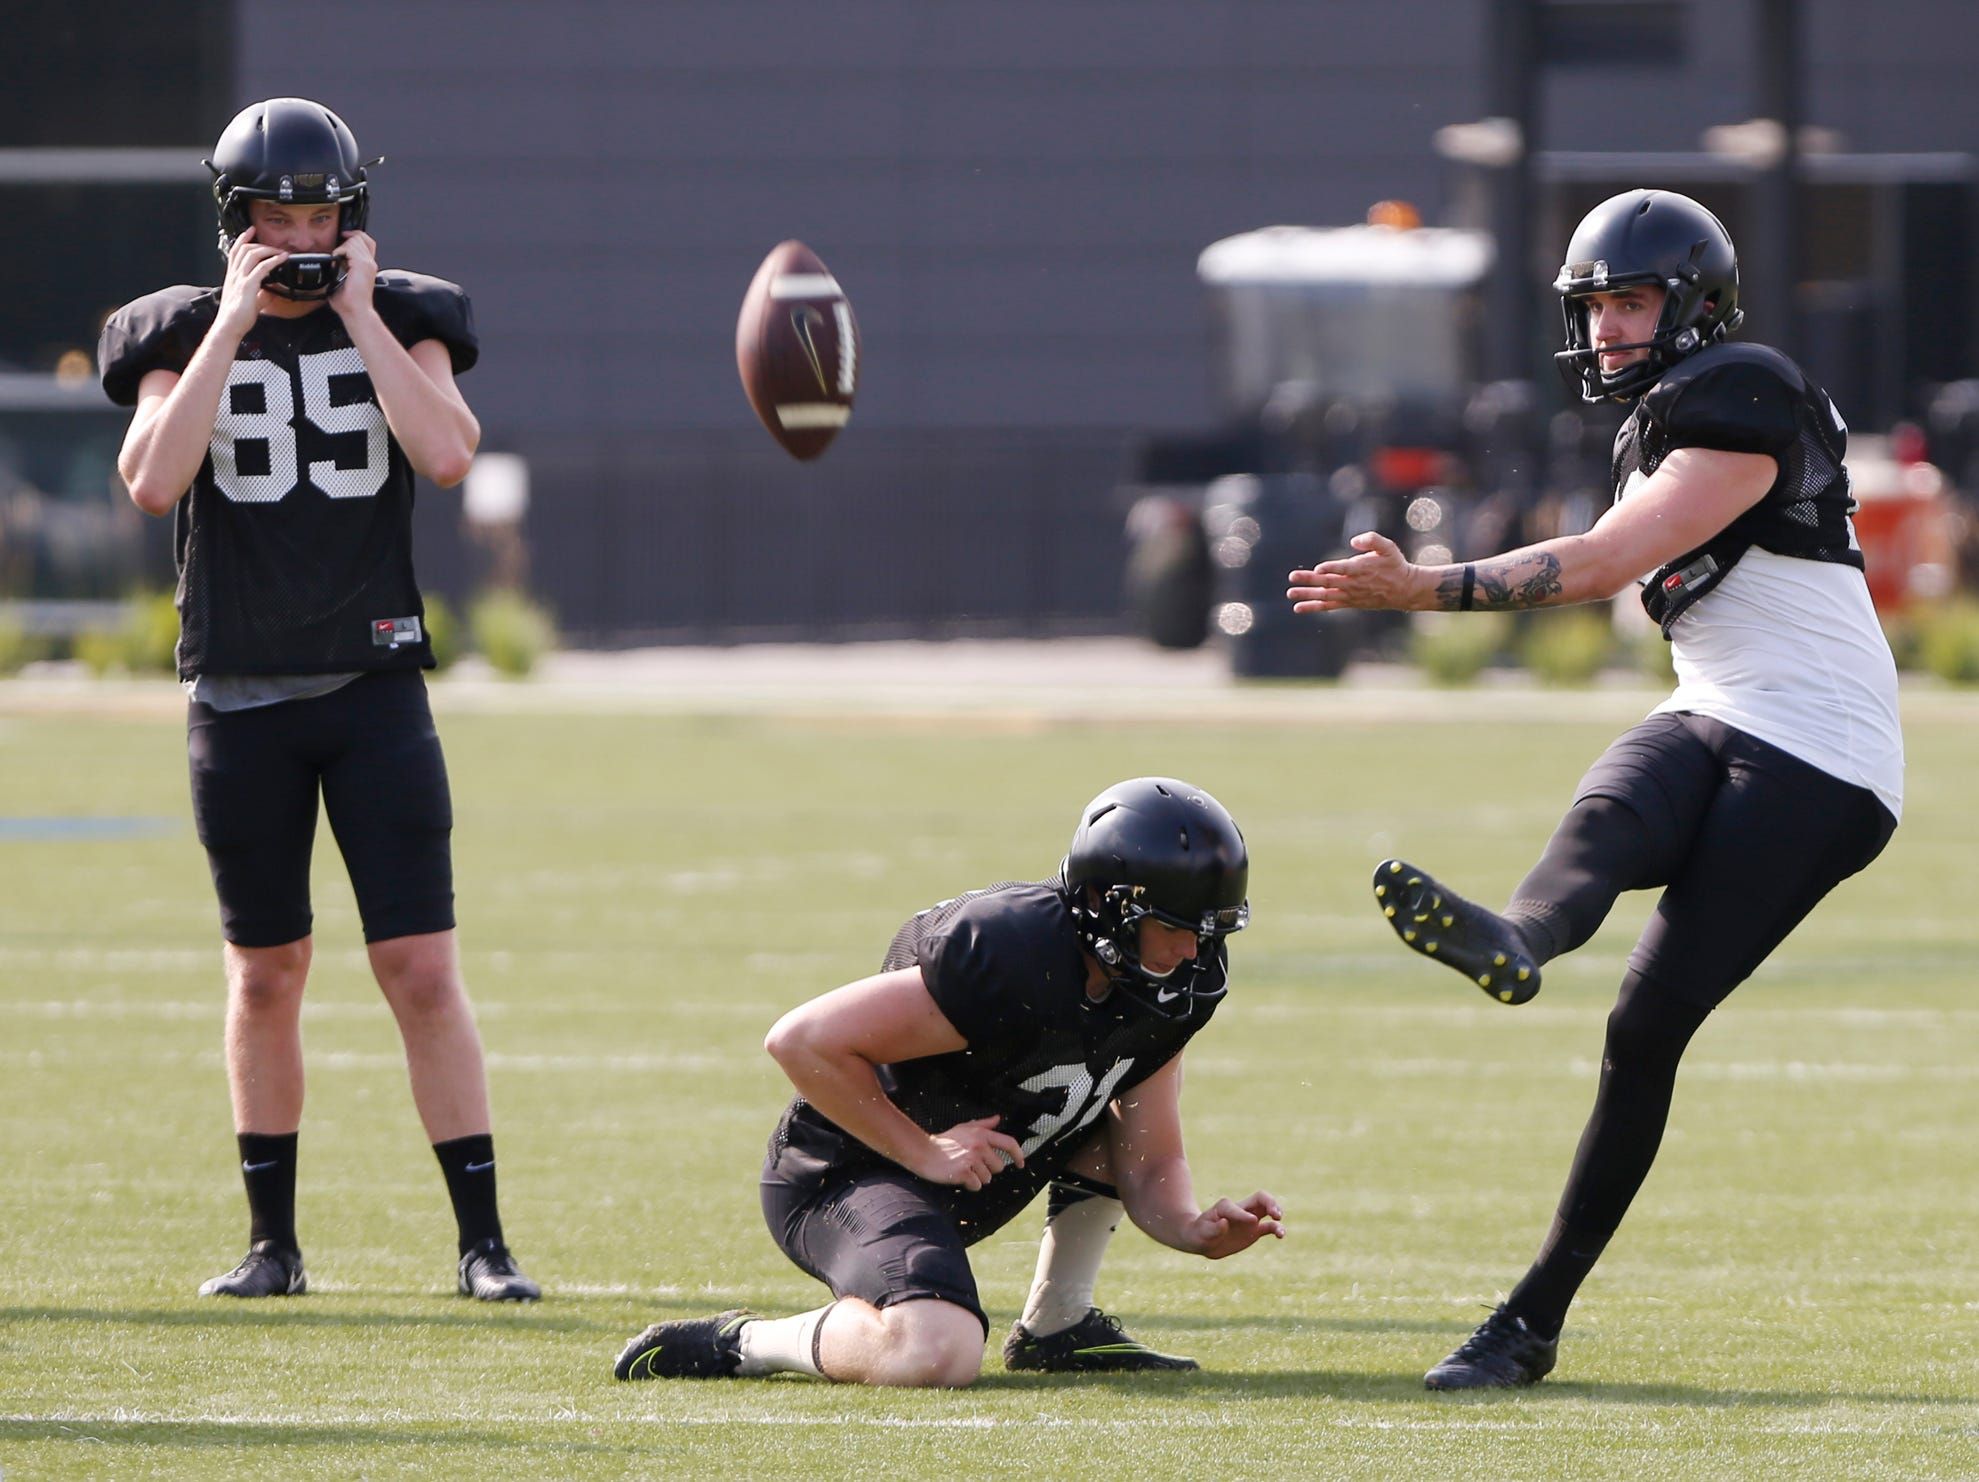 Kicker Spencer Evans with a field goal attempt with punter Joe Schopper as fellow kicker J.D. Dellinger looks on during Purdue football practice Friday, August 10, 2018, in West Lafayette.